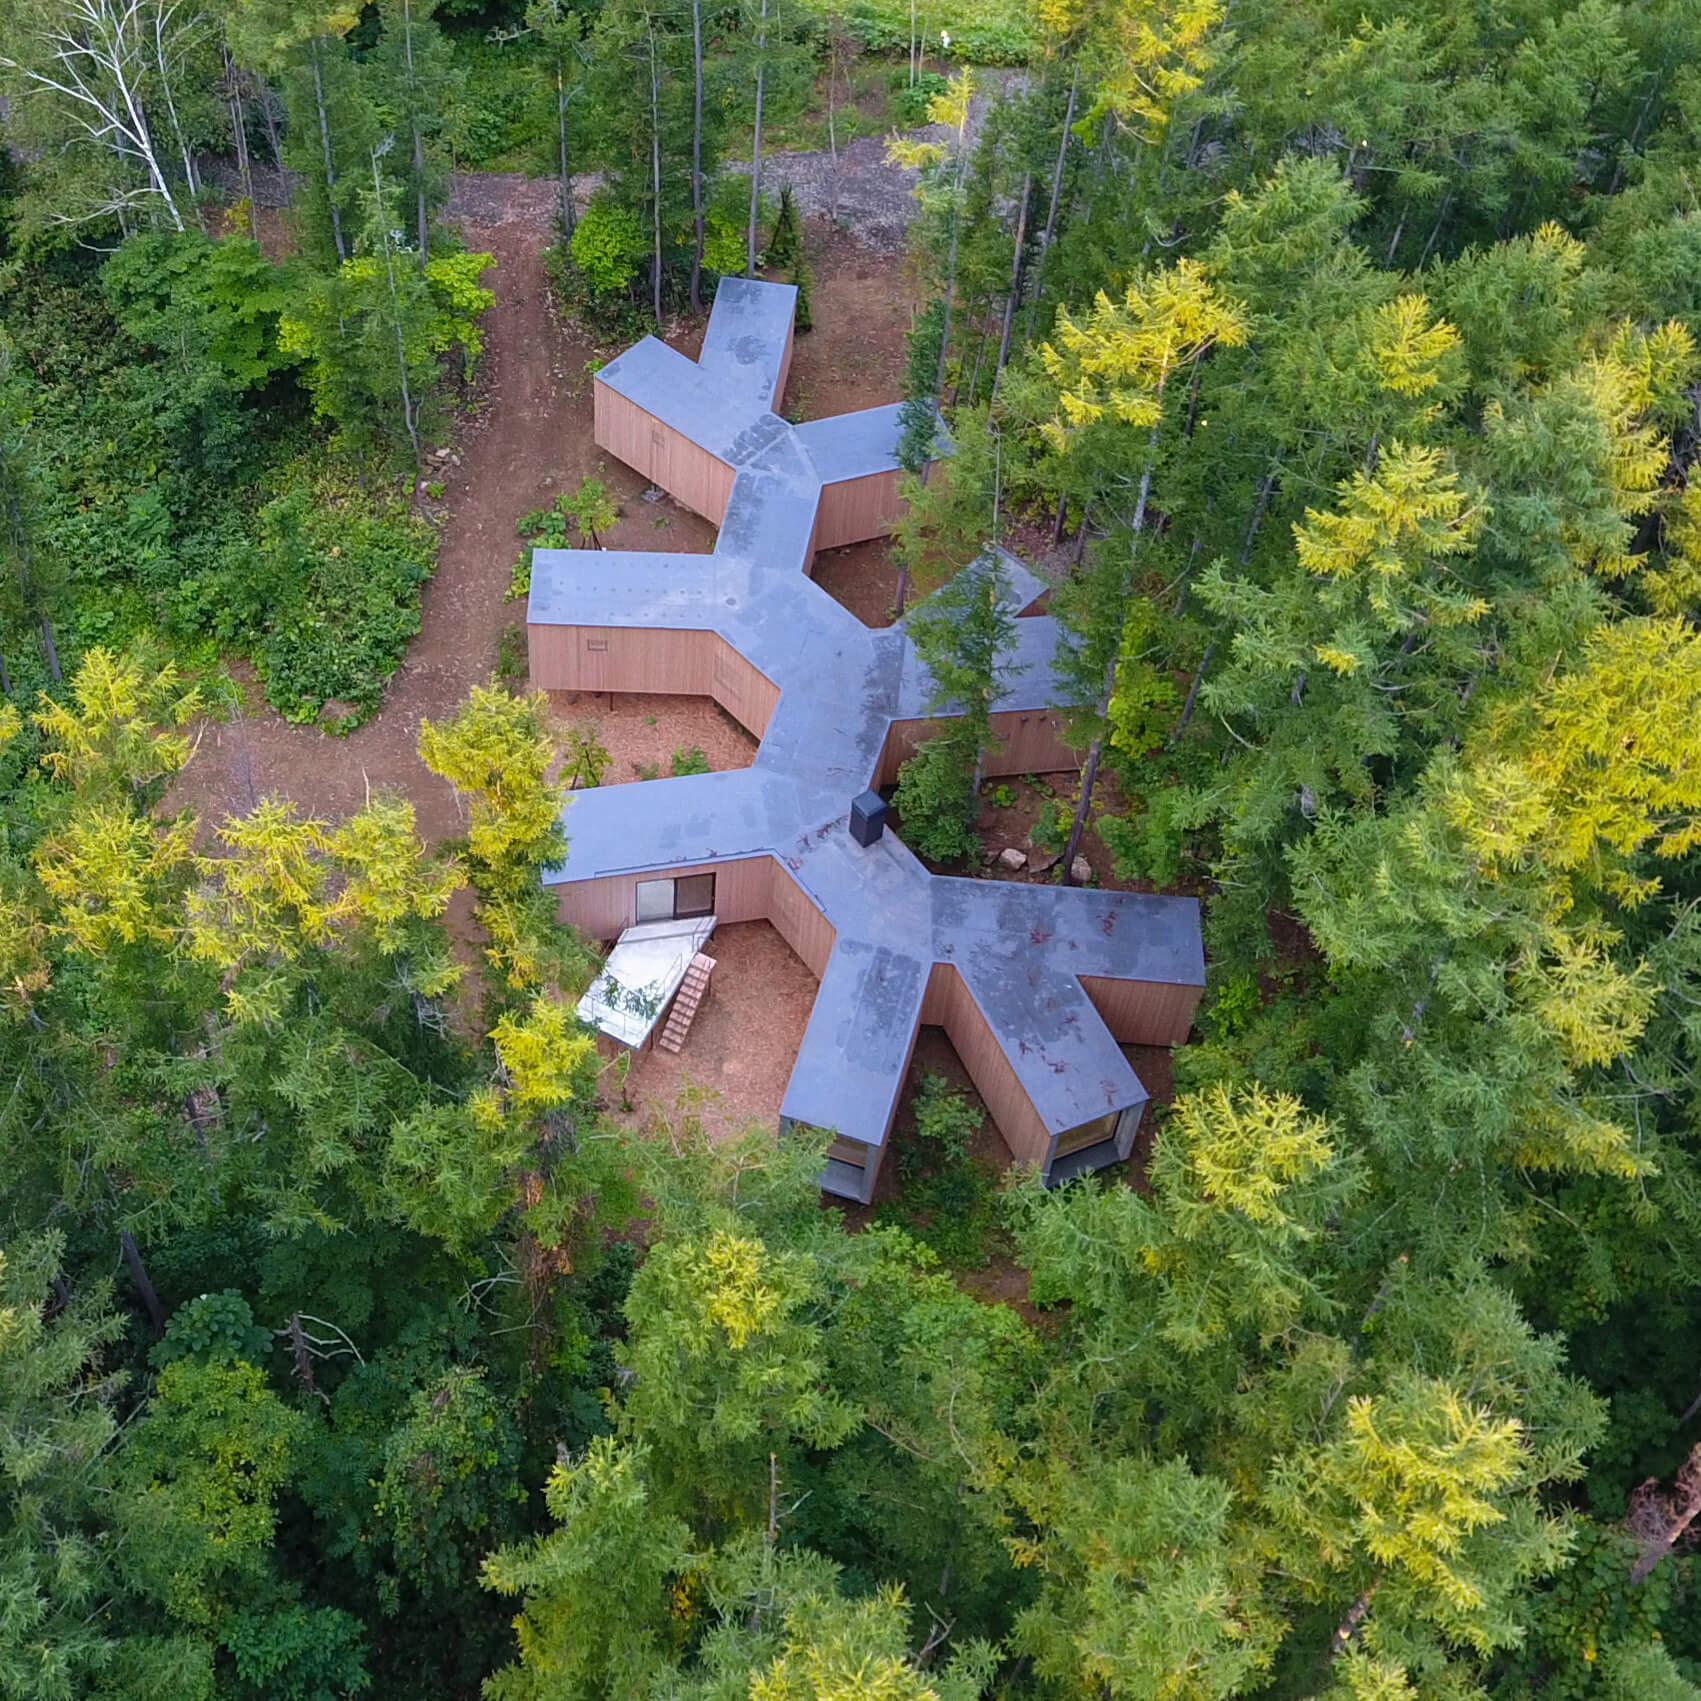 House in the Forest branches out in a faraway forest in Japan | House in the Forest designed by Florian Busch Architects | STIRworld